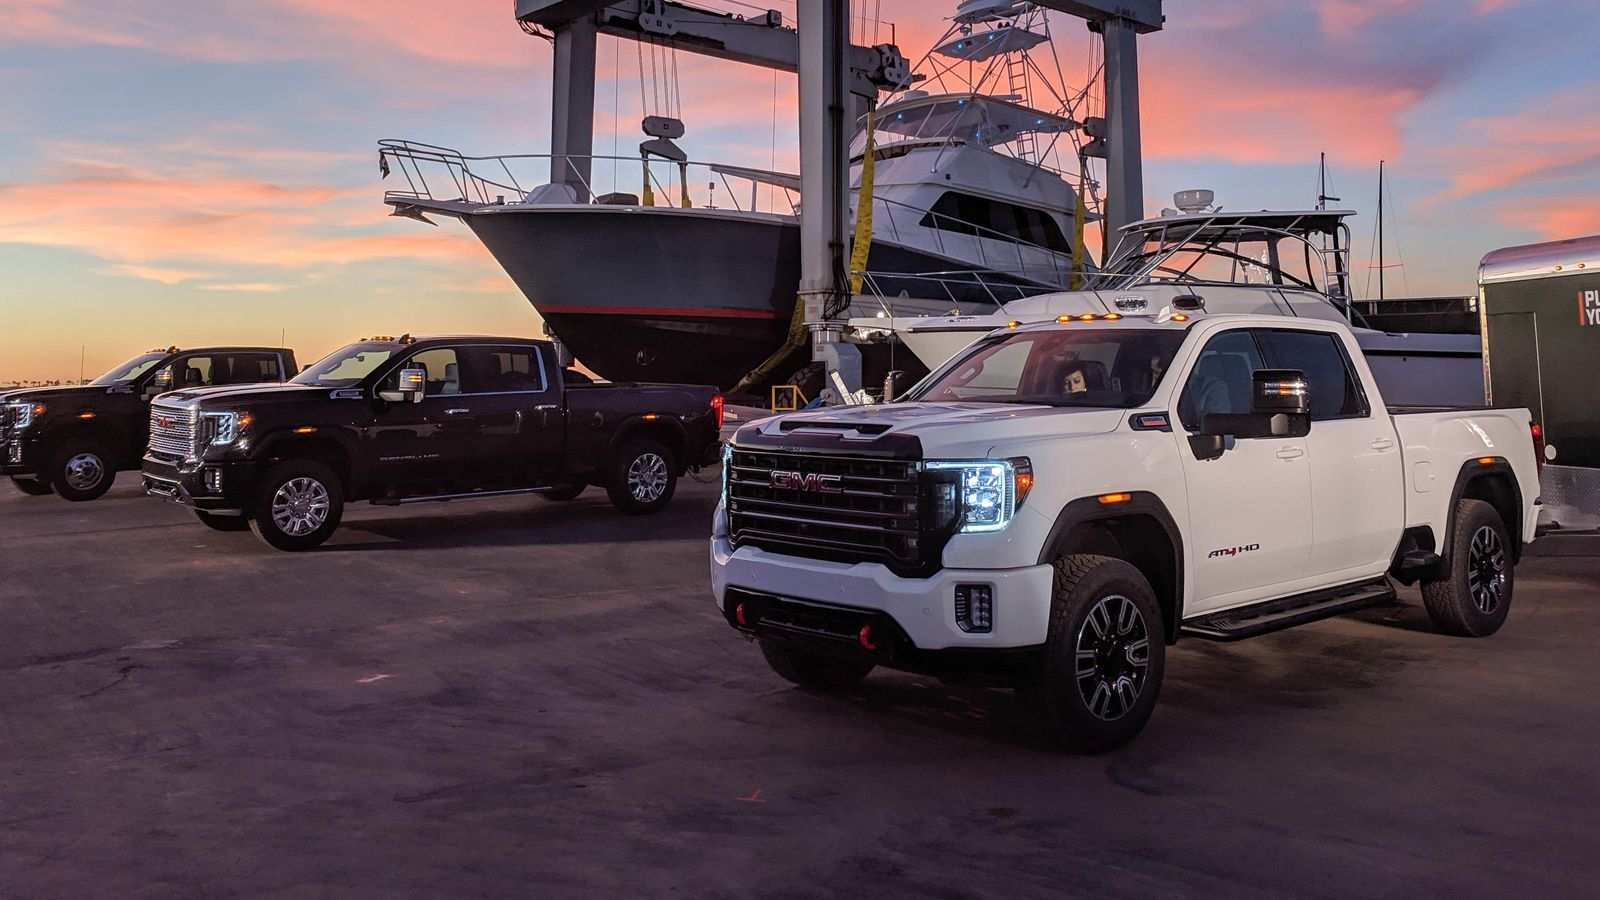 62 A Gmc Vehicles 2020 Wallpaper